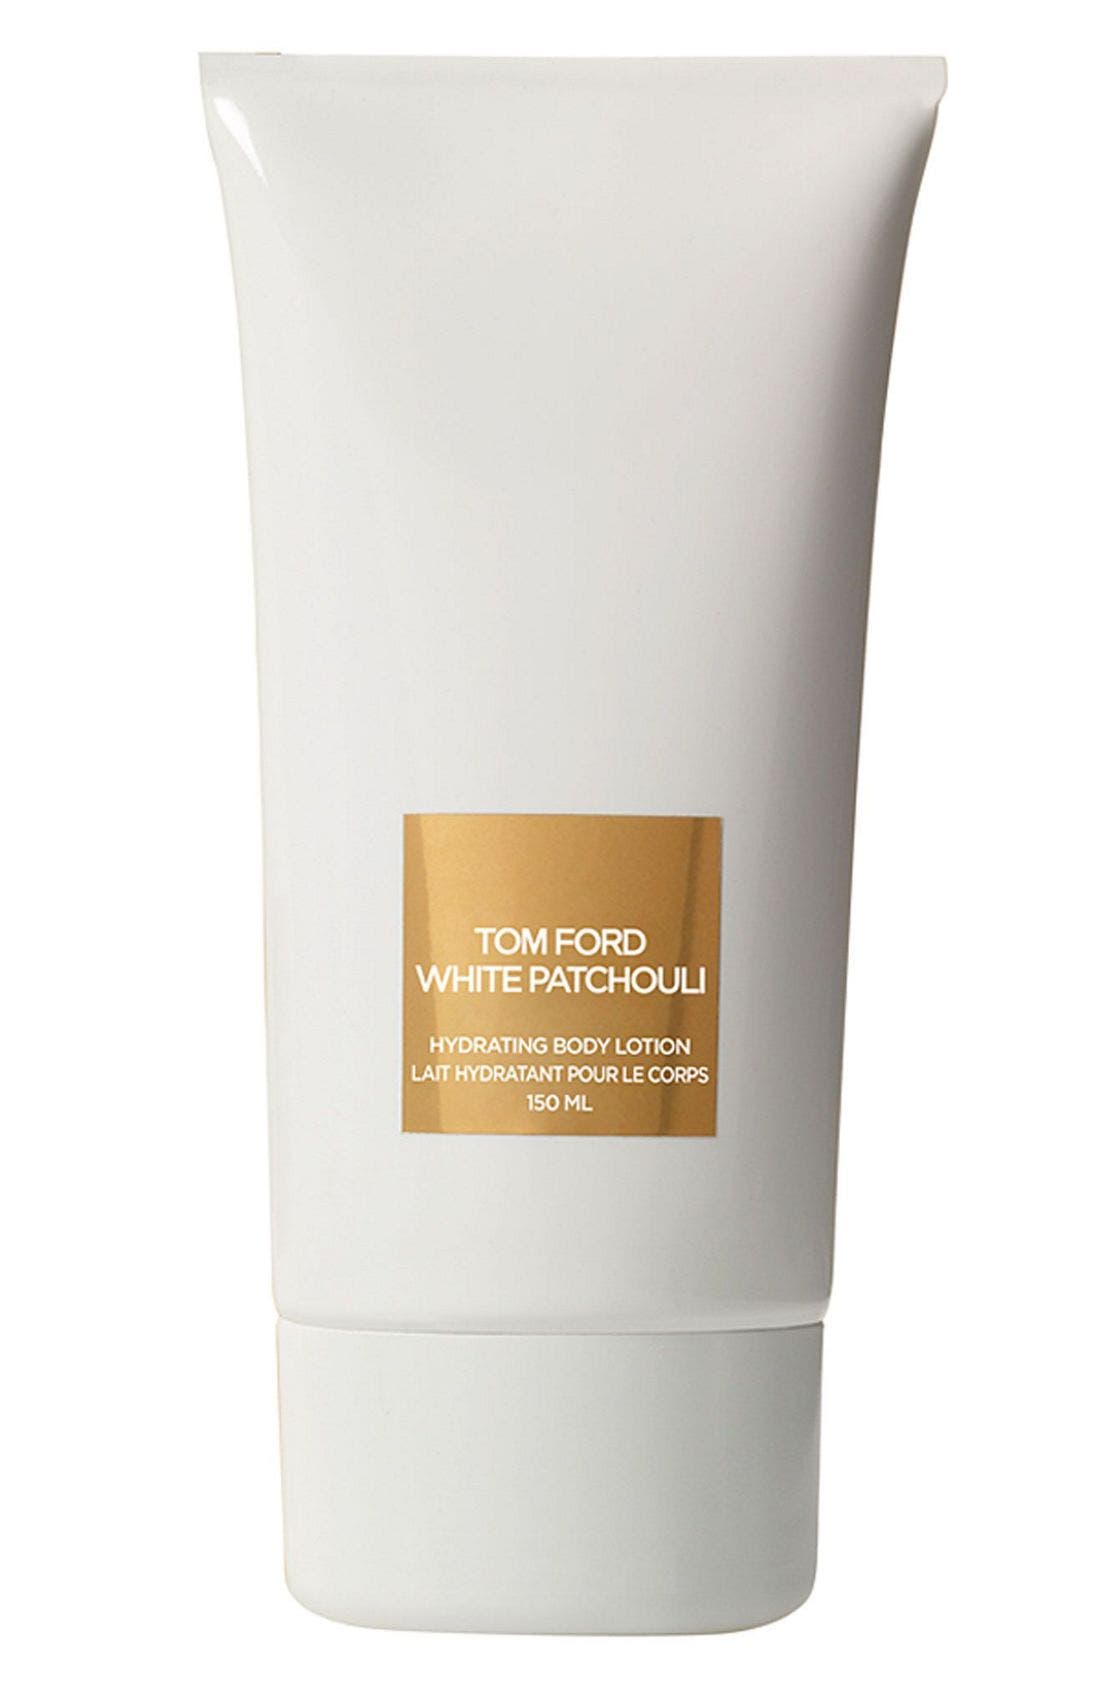 'White Patchouli' Hydrating Body Lotion,                             Main thumbnail 1, color,                             000